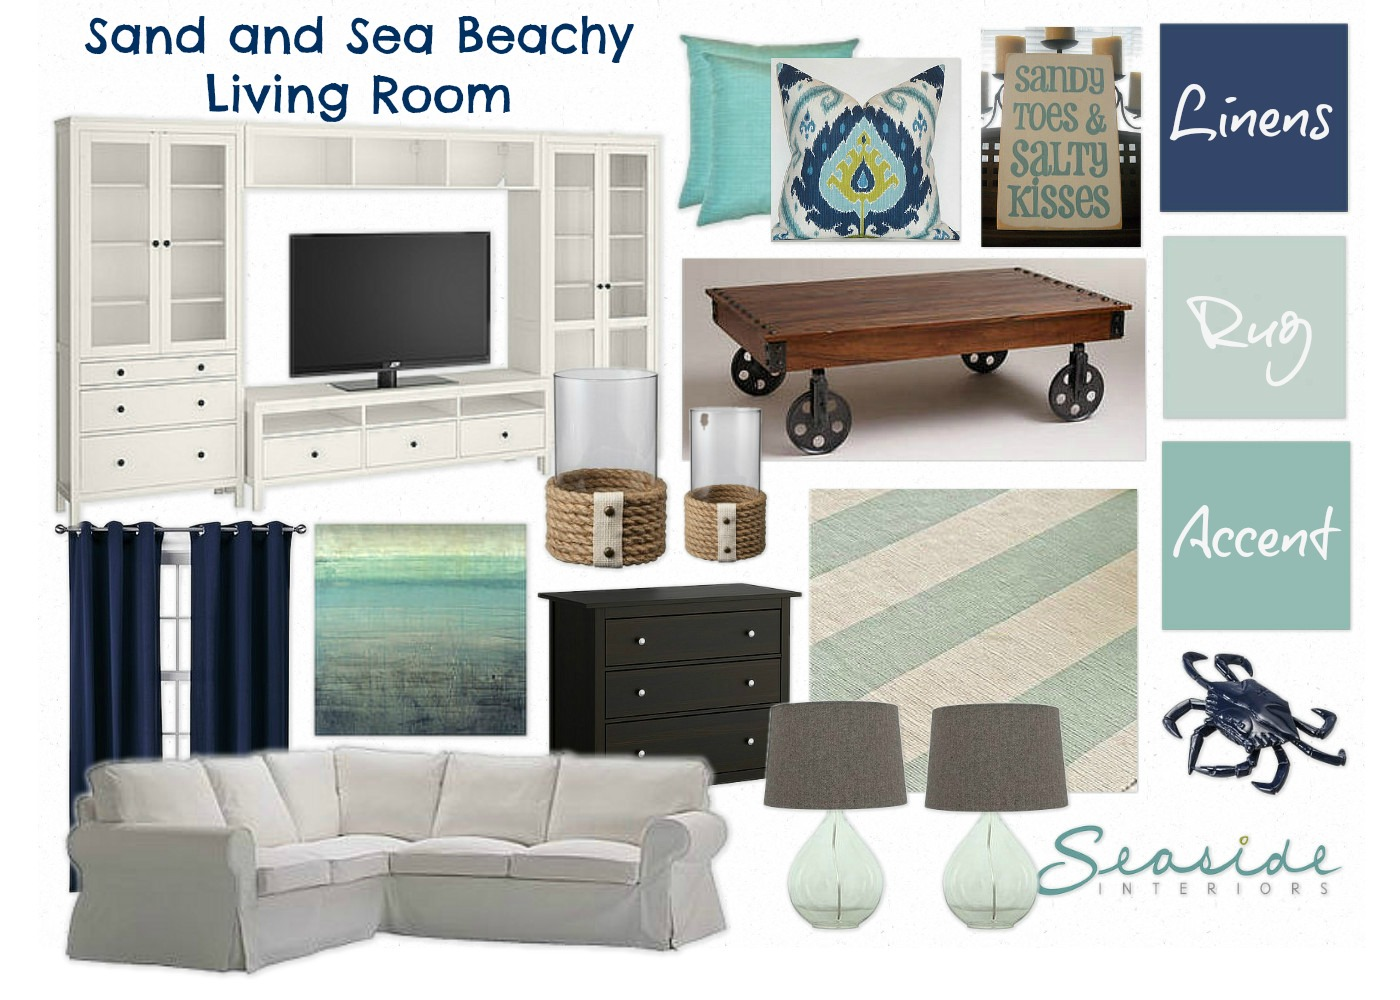 Turquoise Living Room Seaside Interiors Sand And Sea Beachy Living Room In Navy And